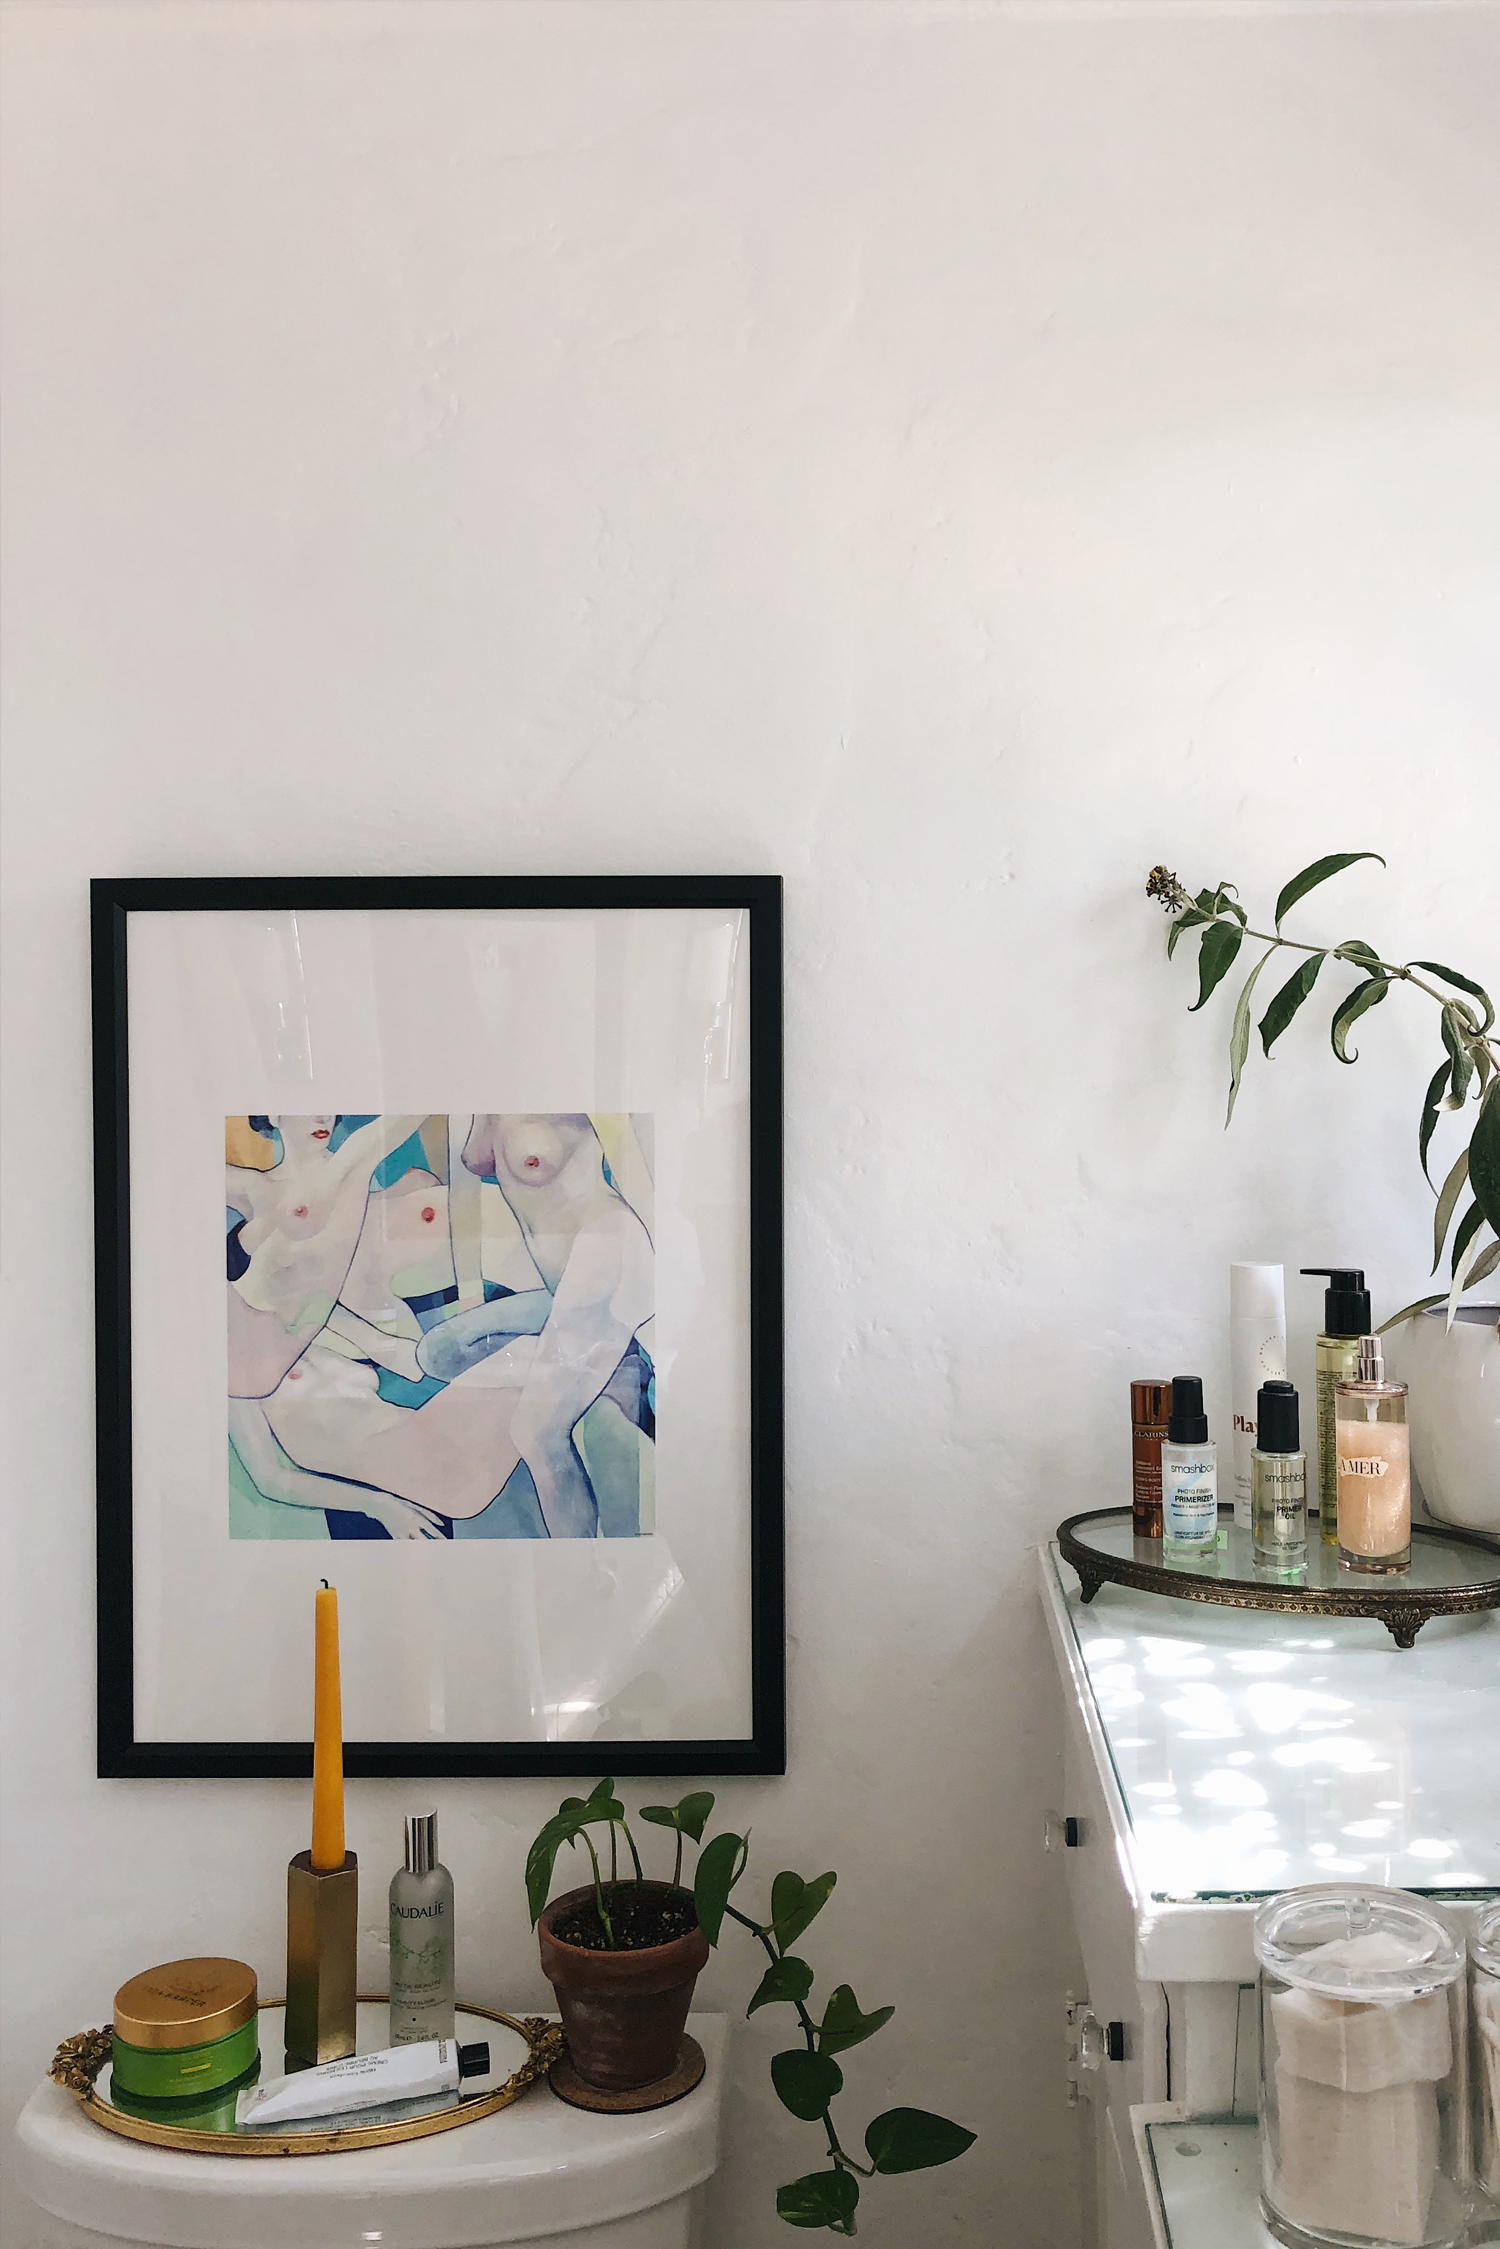 Neon Blush, Society6, artwork, prints and frames, framed artwork, interior design, interiors, LA, Los Angeles homes, home and design, Jenny Ong, plants, plant addiction